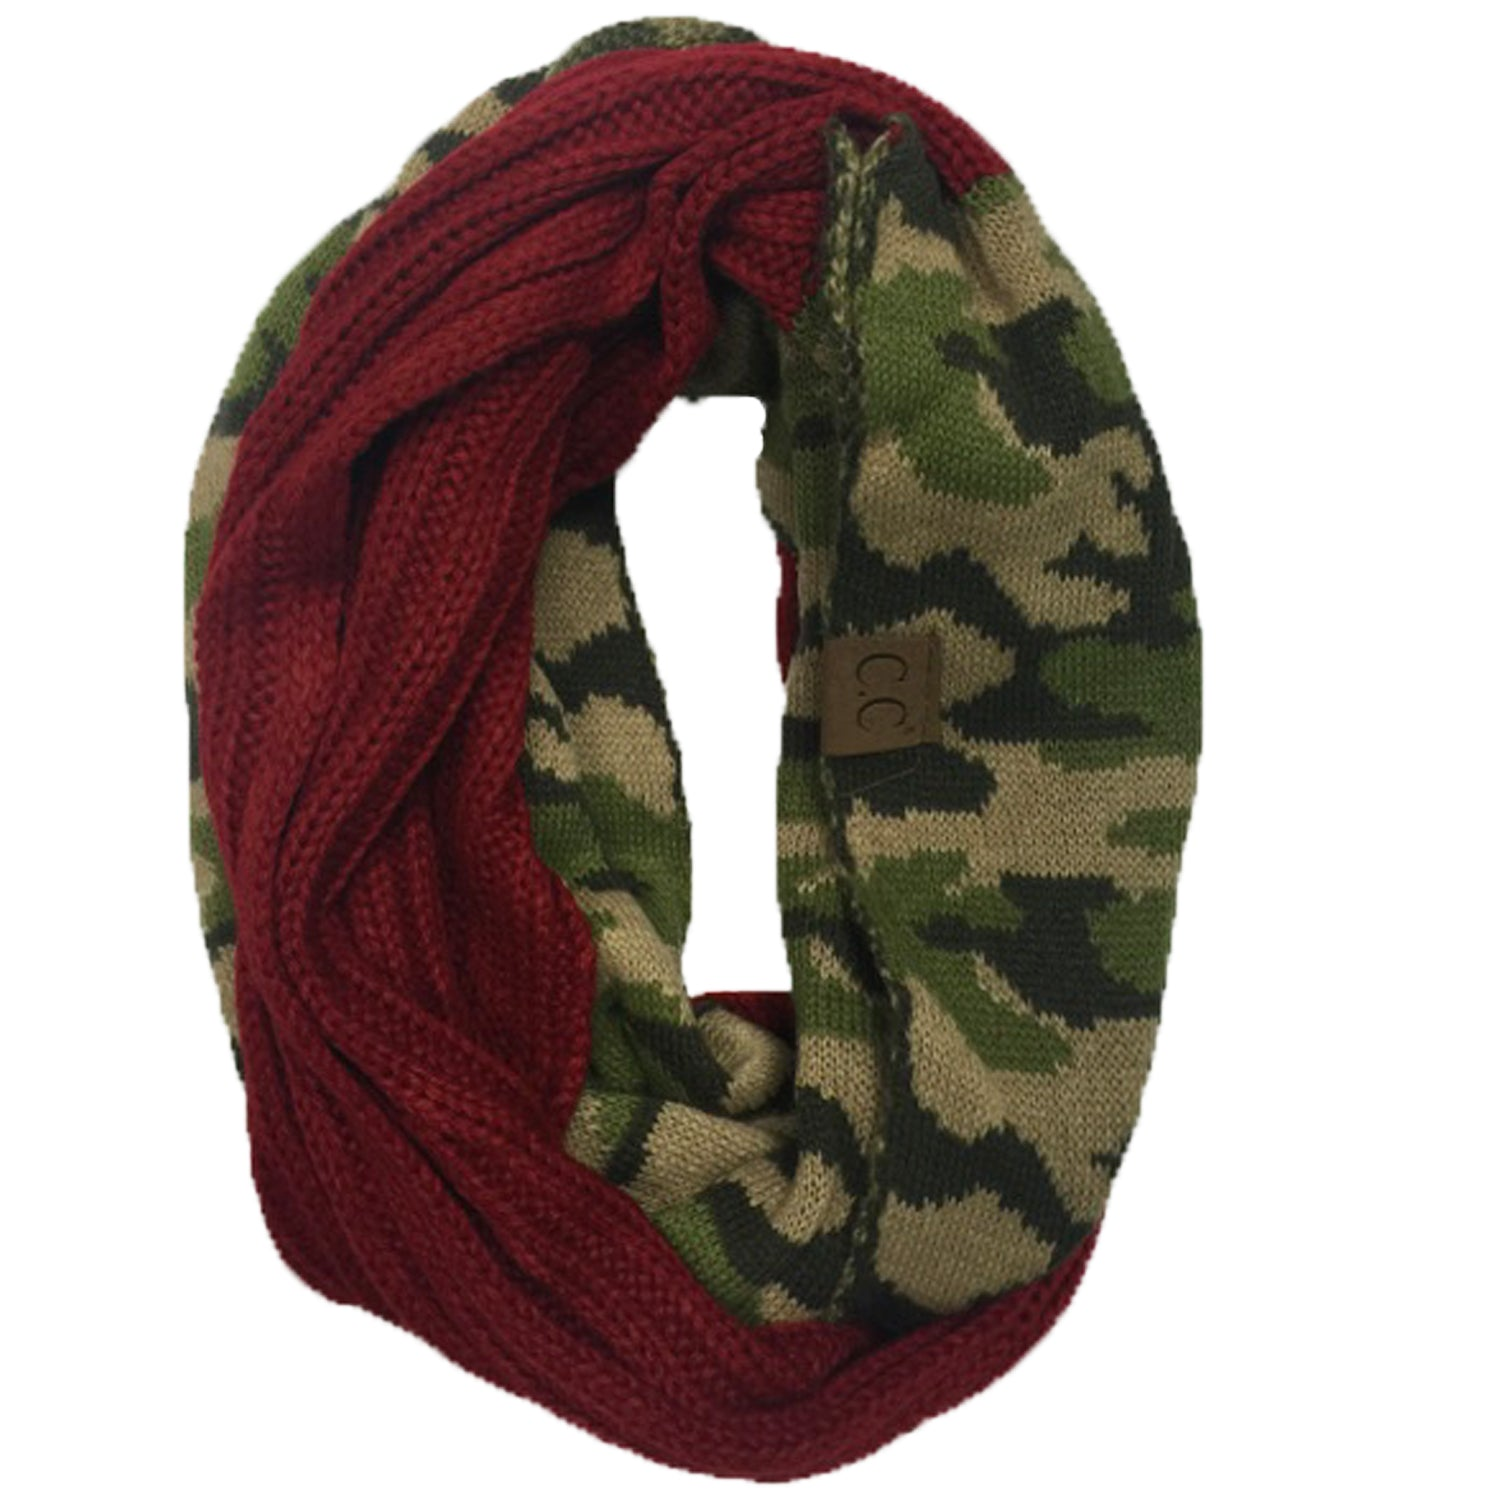 SF-46 Camo Infinity Scarf Red